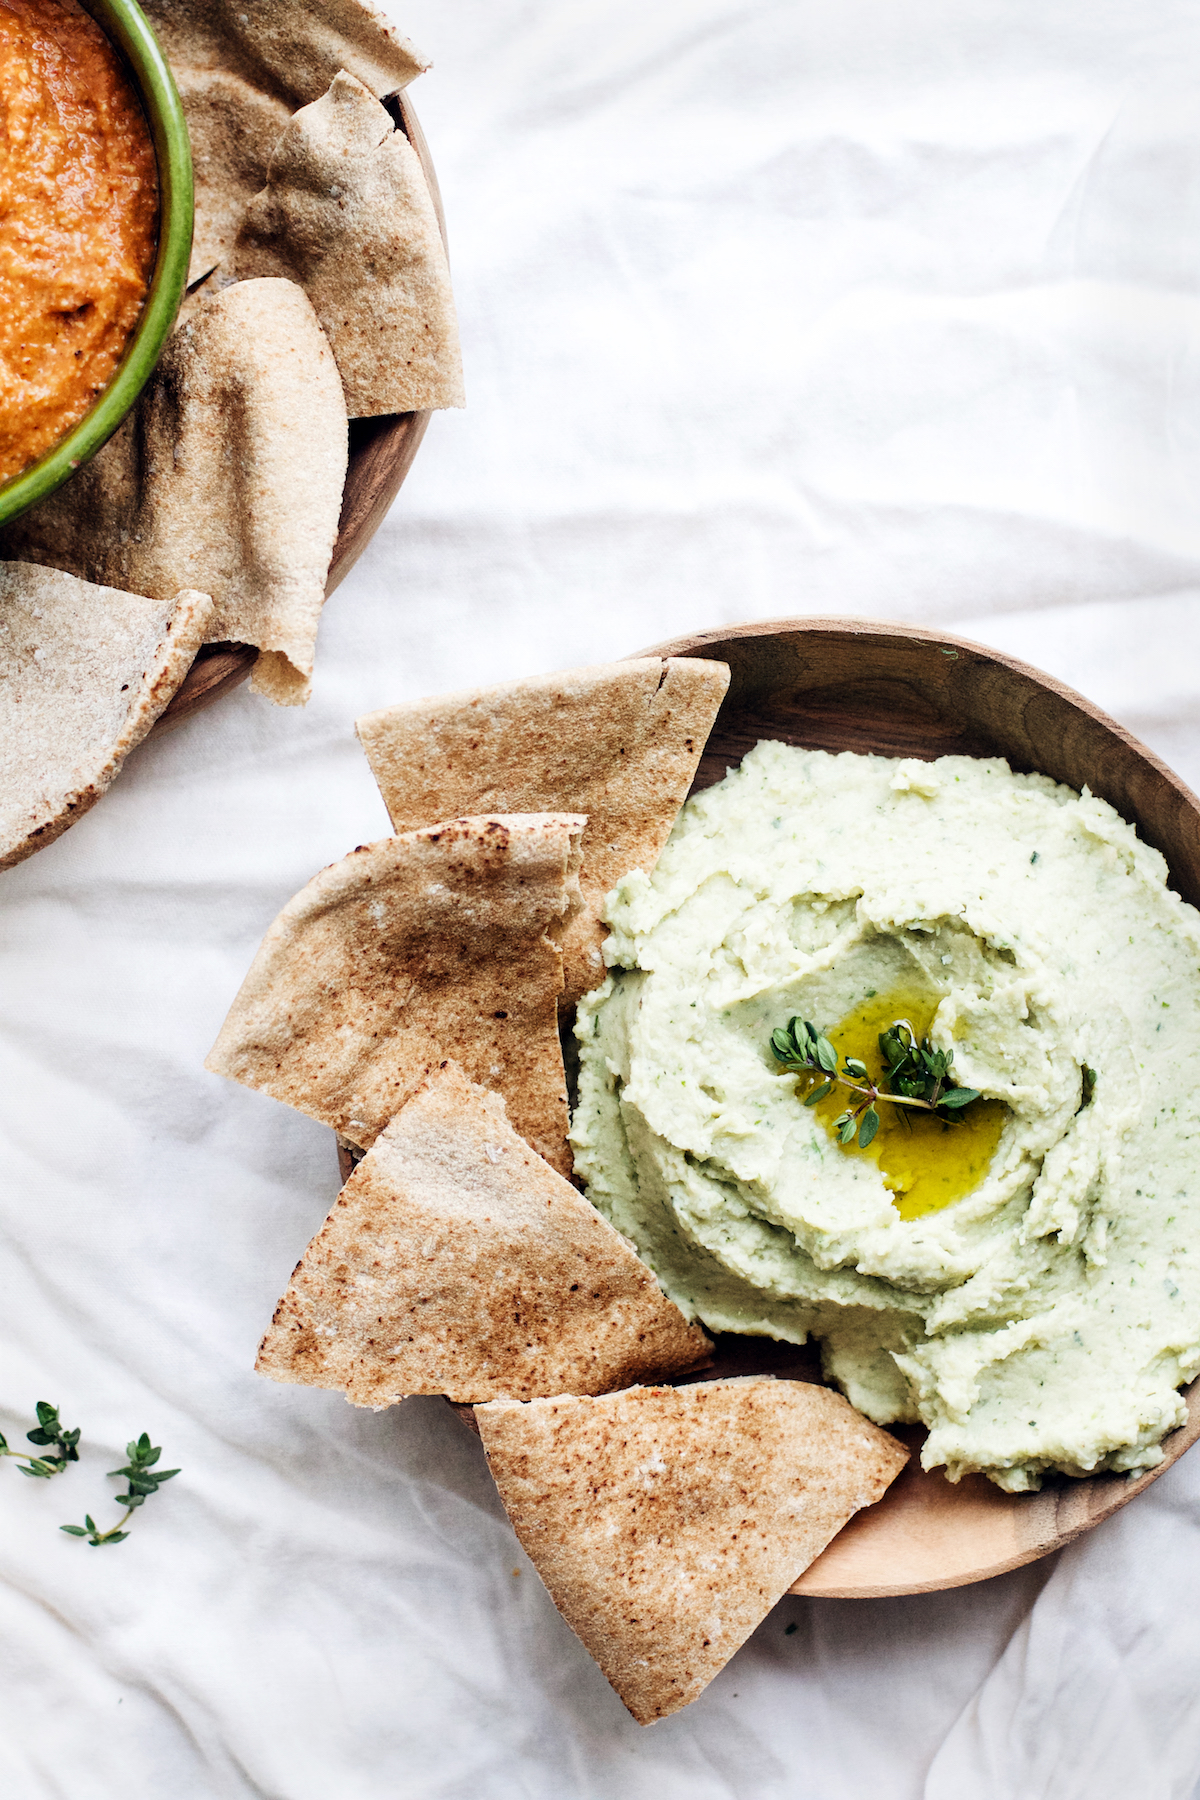 Lemony Garlic Herb White Bean Dip from Pretty Simple Cooking by A Couple Cooks   Ruby Josephine #vegan #prettysimplecooking